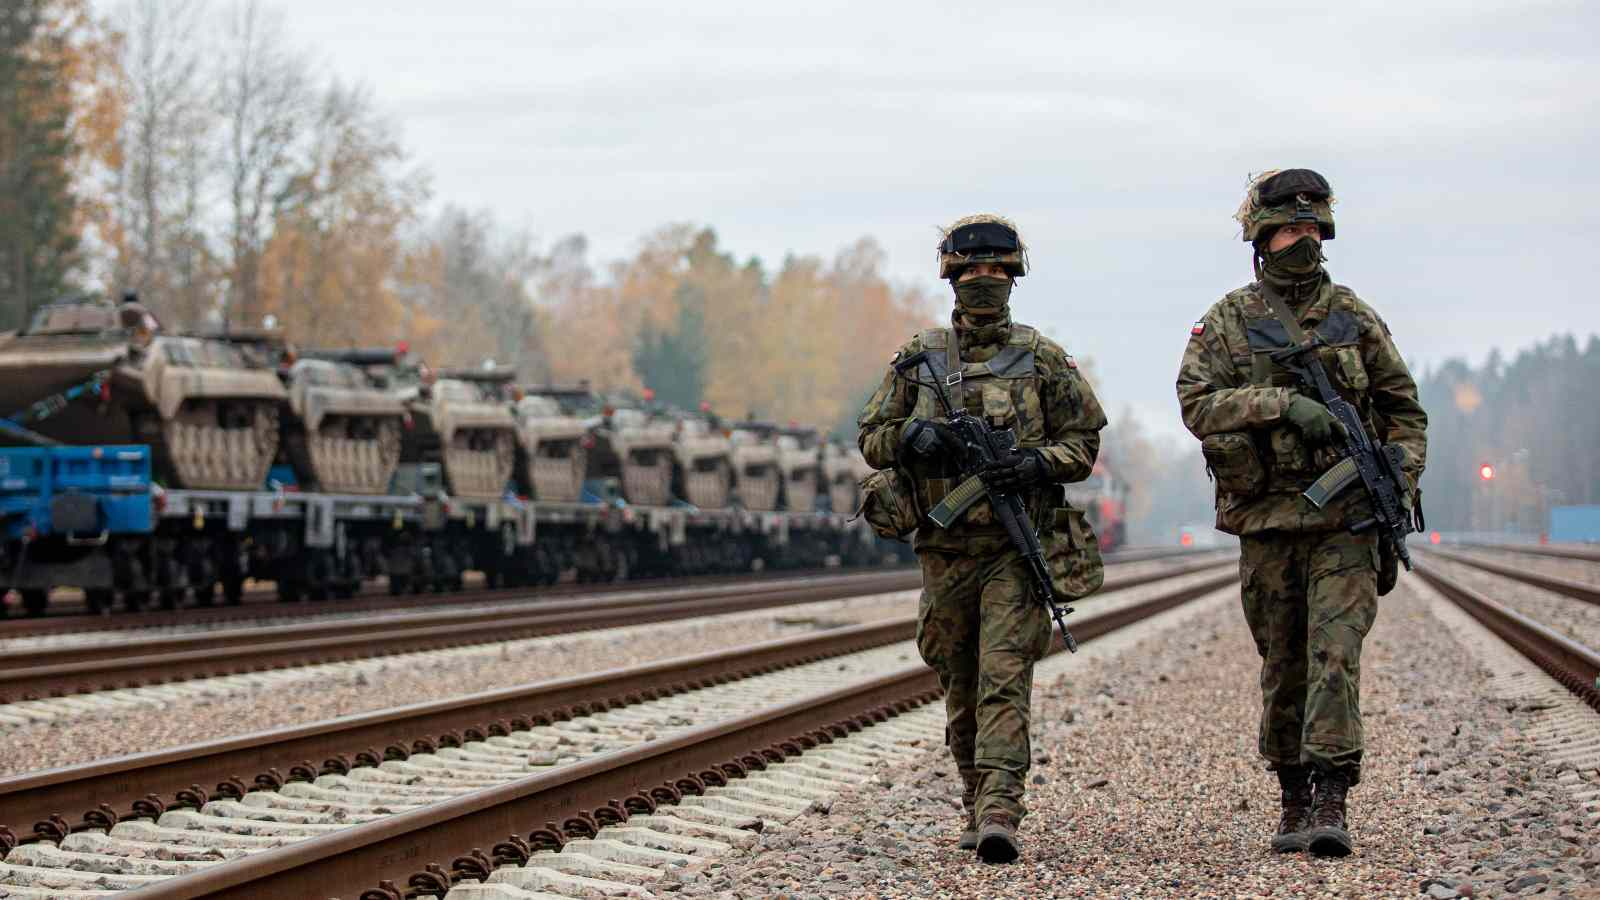 Polish soldiers patrol the rail yard at Mockava, Lithuania during Exercise Brilliant Jump 20. Brilliant Jump is a deployment exercise designed to test the readiness of NATO's spearhead unit, the Very High Readiness Joint Task Force. The VJTF deployed to Lithuania by land, air and sea to take part in the Lithuanian national exercise Iron Wolf II. To avoid the spread of COVID-19, the deploying forces avoided civilian populations on their way to Lithuania and practiced social distancing.